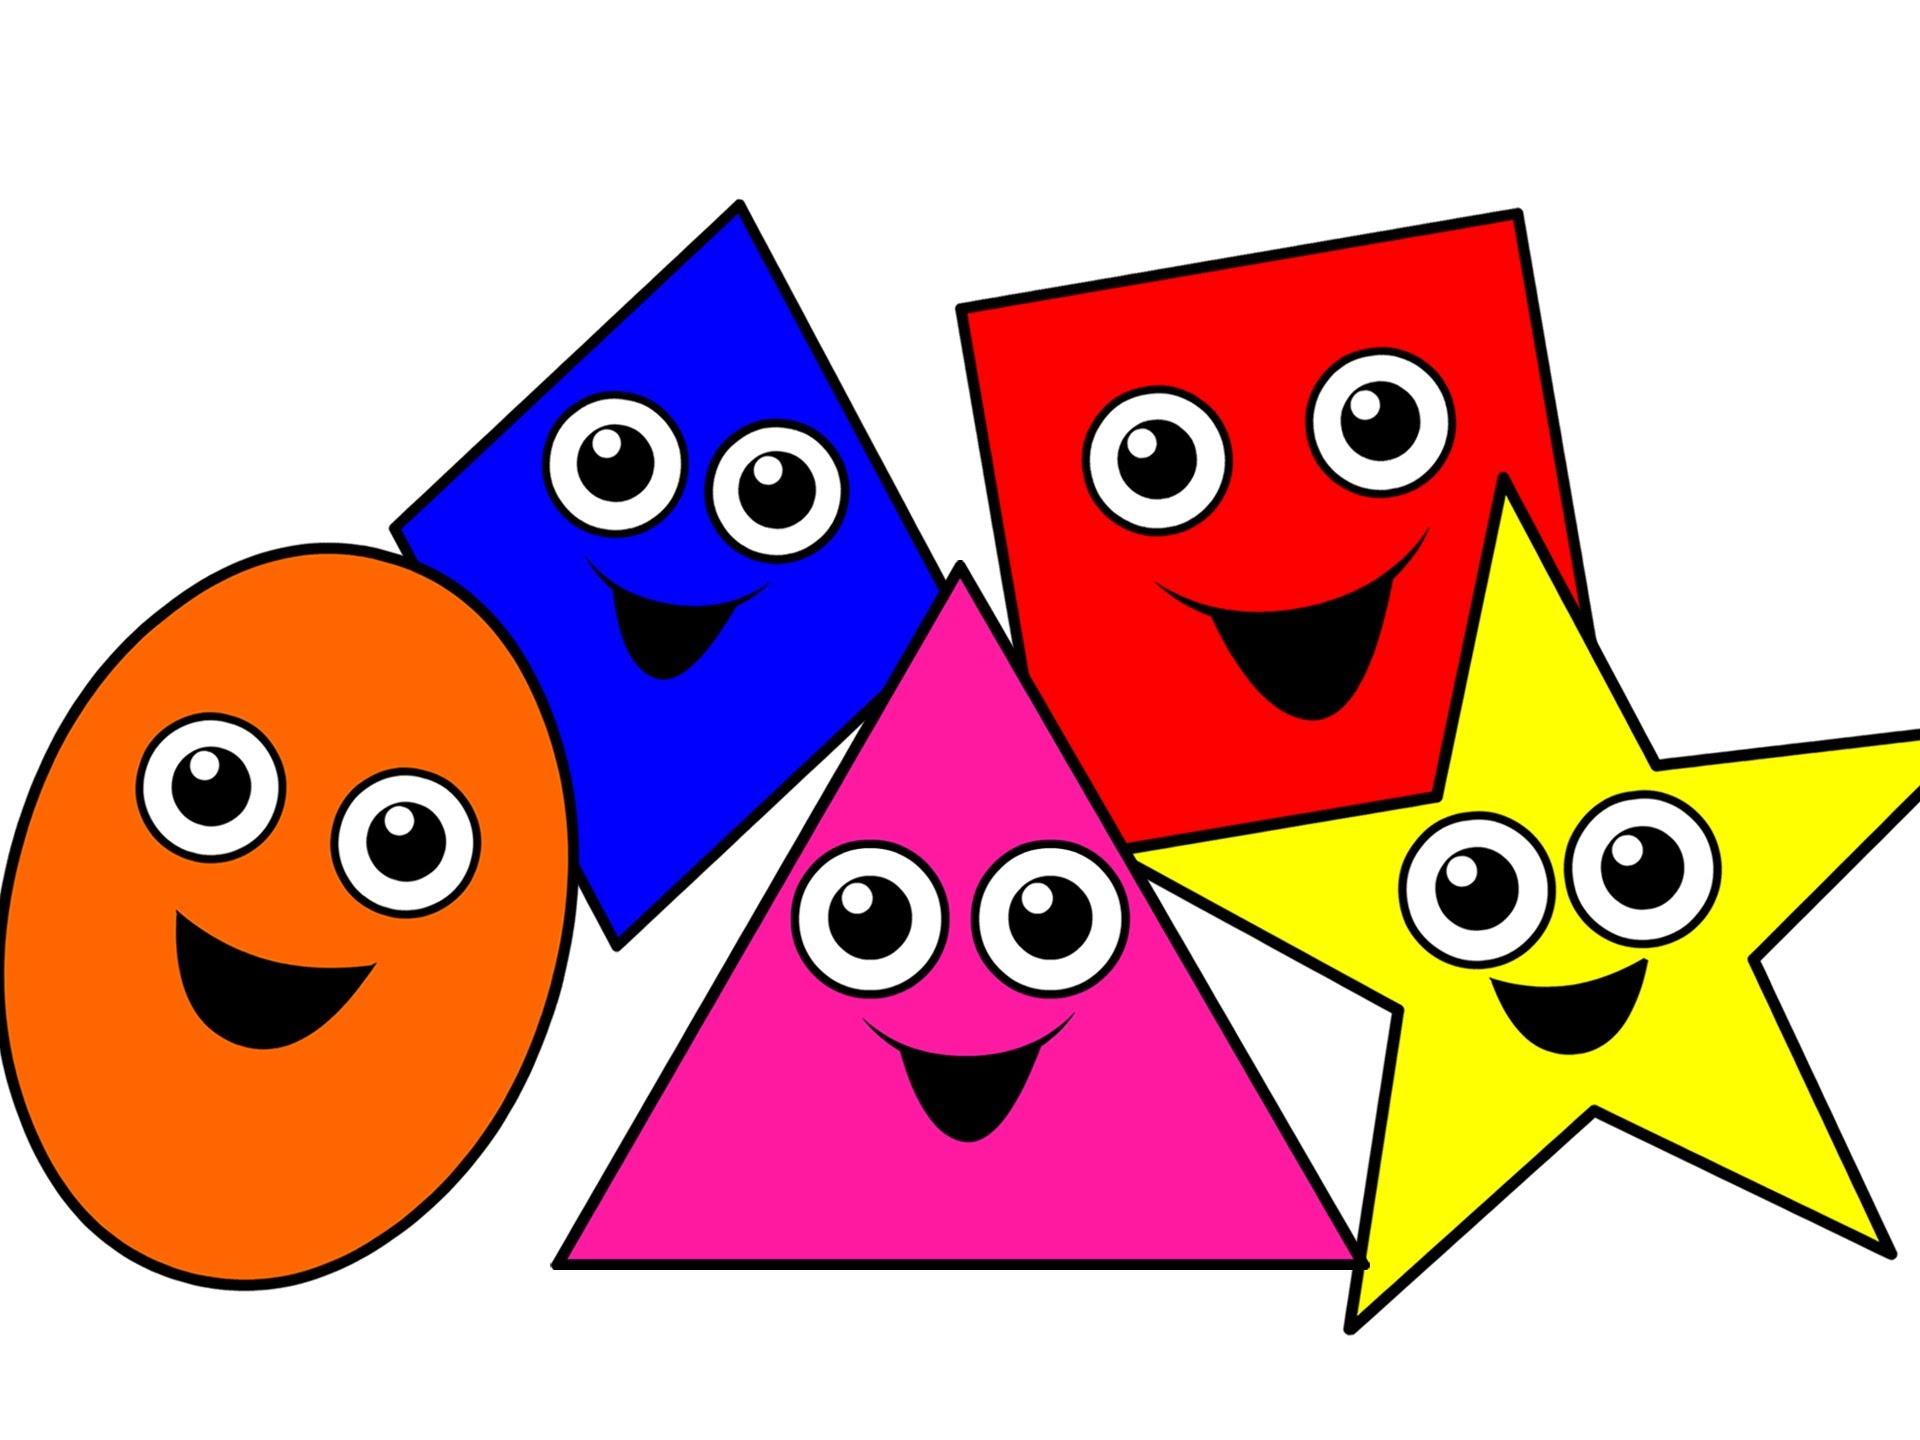 Clipart Matching Shapes And Color 20 Free Cliparts